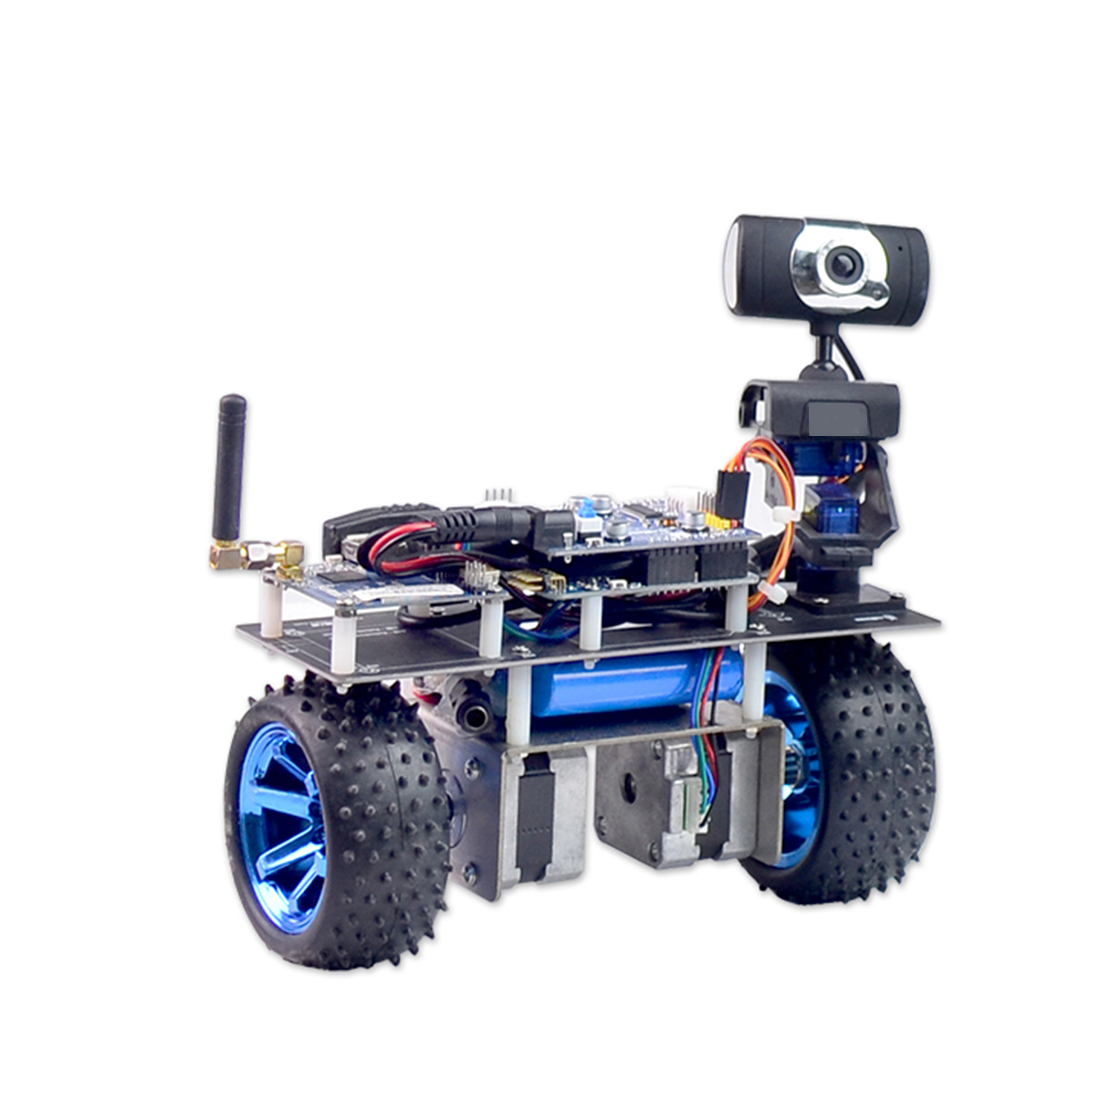 DIY Stem Programmable Intelligent Balance Car WiFi Video Robot Car Support IOS/Android APP PC Remote Control For STM32